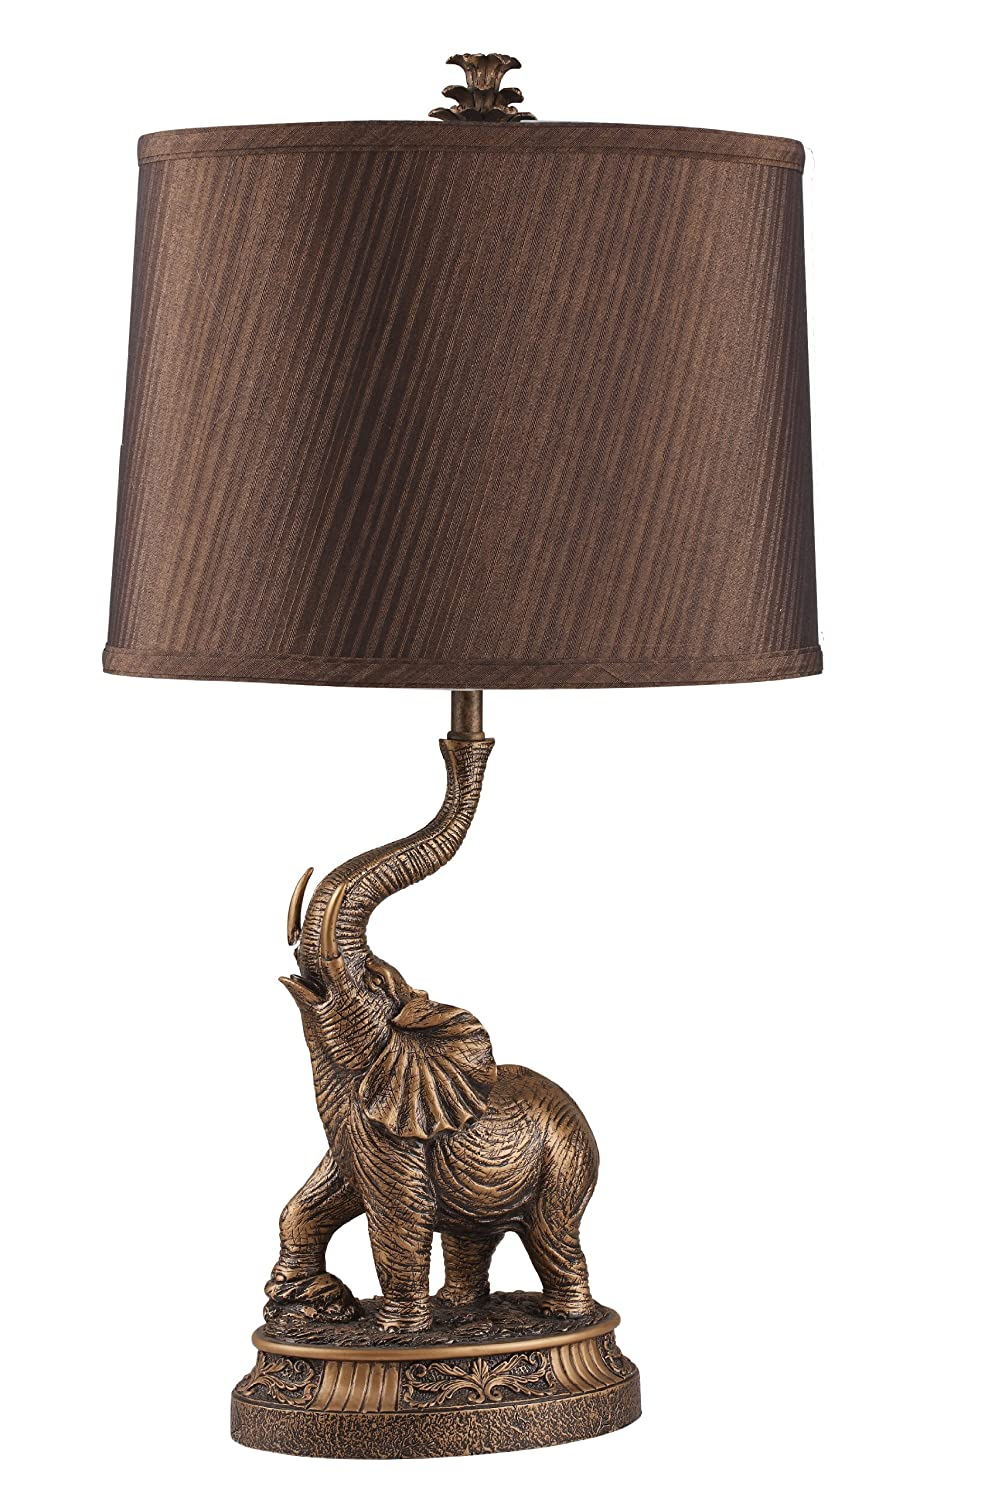 Greatest Amazon.com: ORE International 8025 27-Inch Bronze Elephant Table  DH37